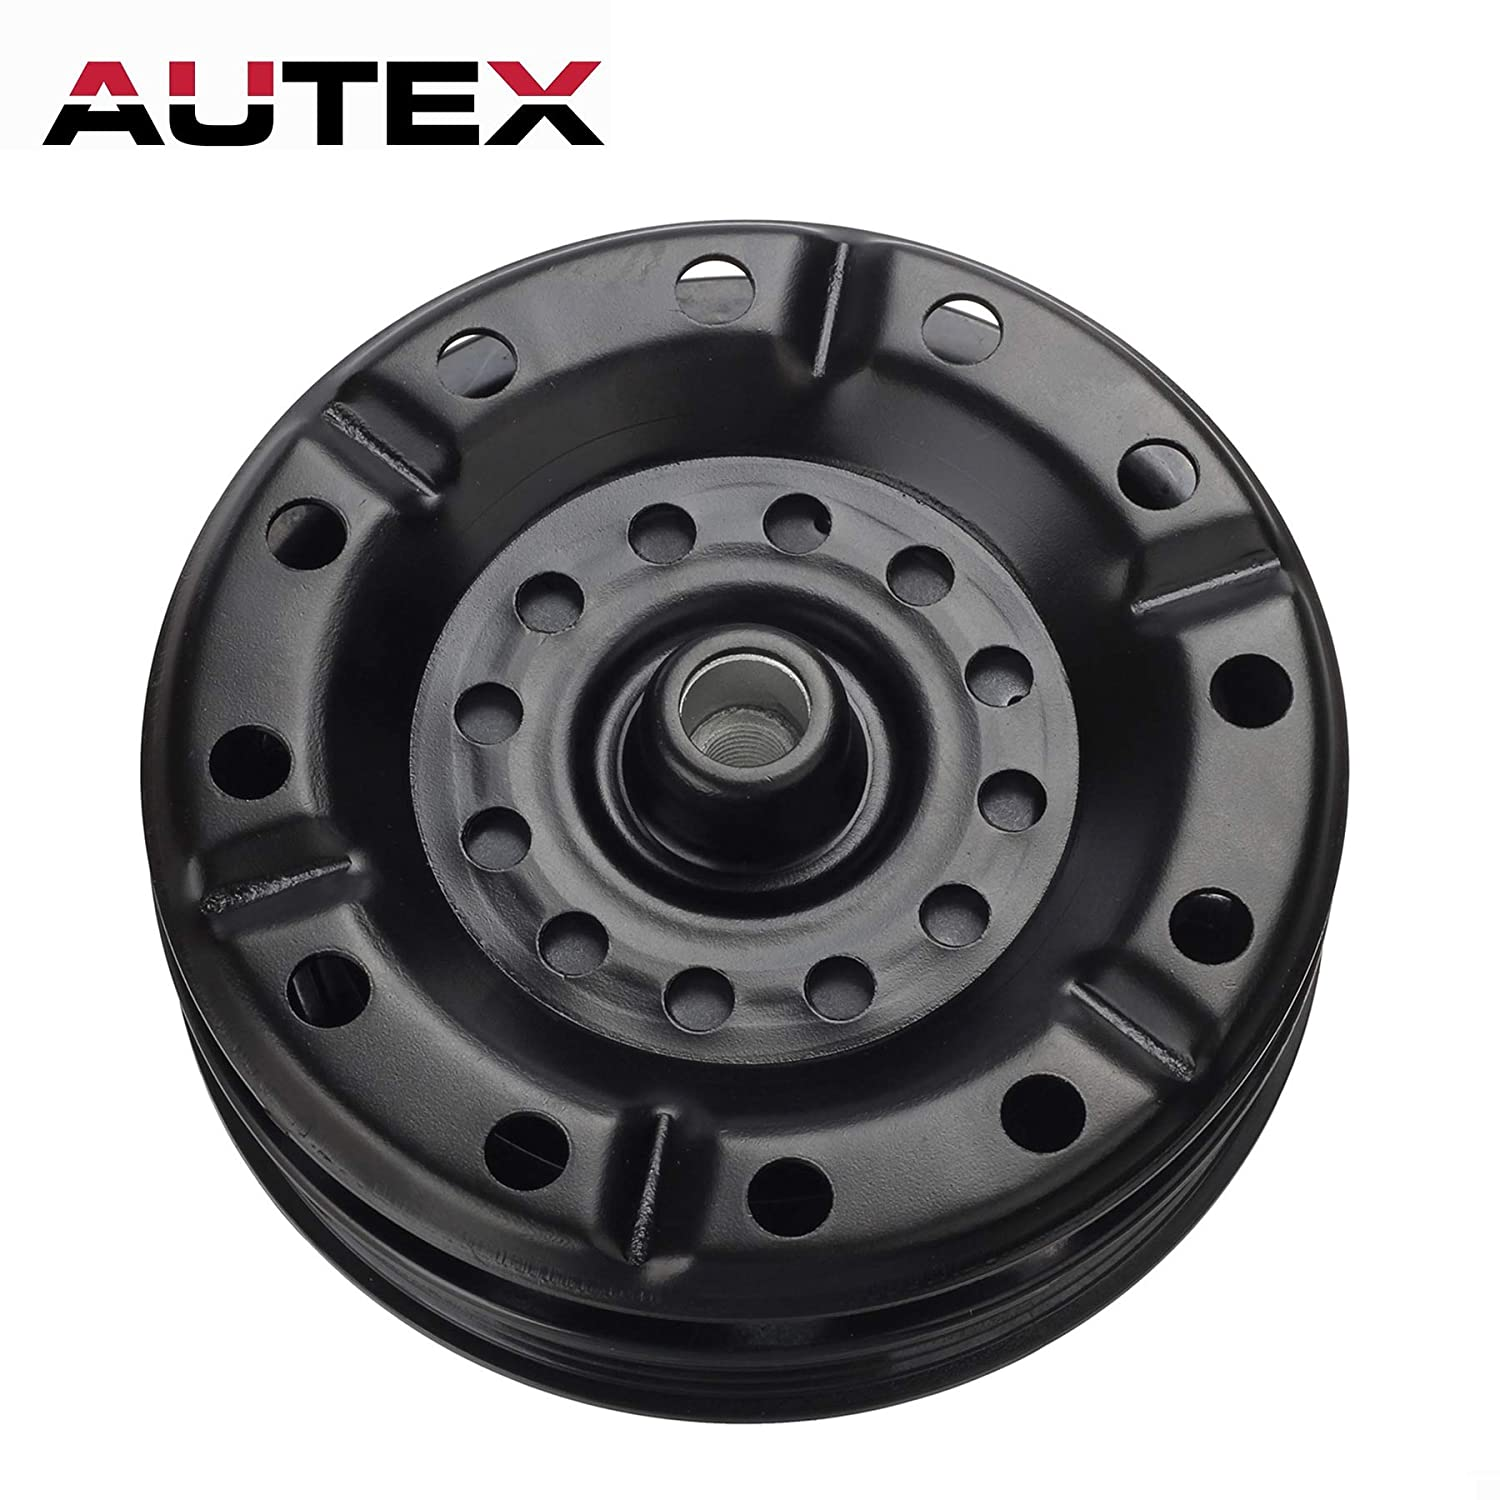 AUTEX AC A/C Compressor Clutch Coil Assembly Kit 88310-52481 Replacement for 2007 2008 2009 2010 2011 2012 Toyota Yaris 1.5L